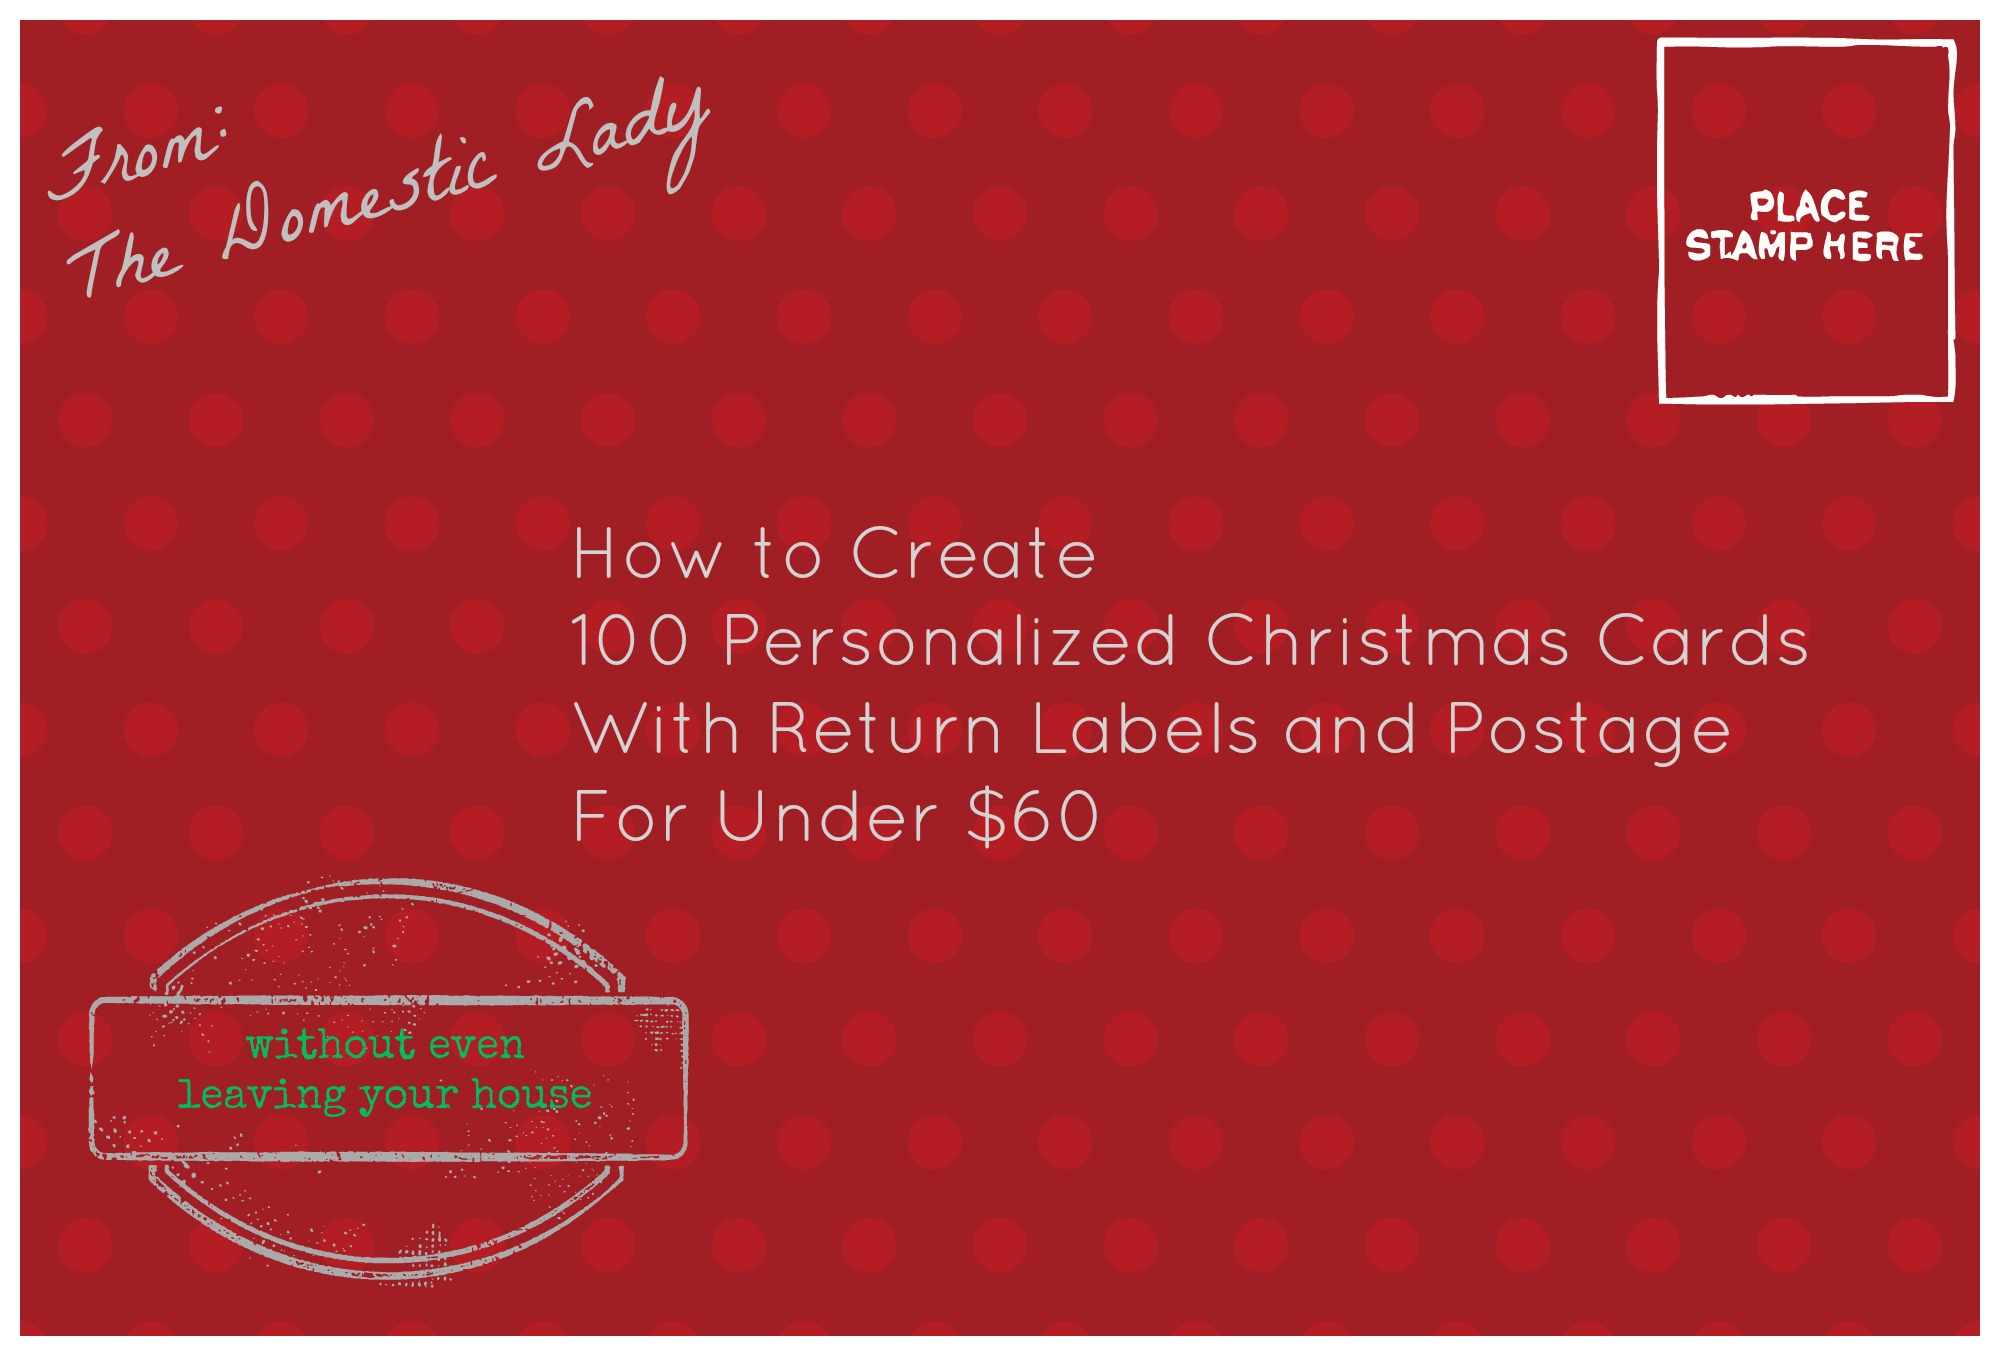 How To Create 100 Personalized Christmas Cards for Under $60 ...